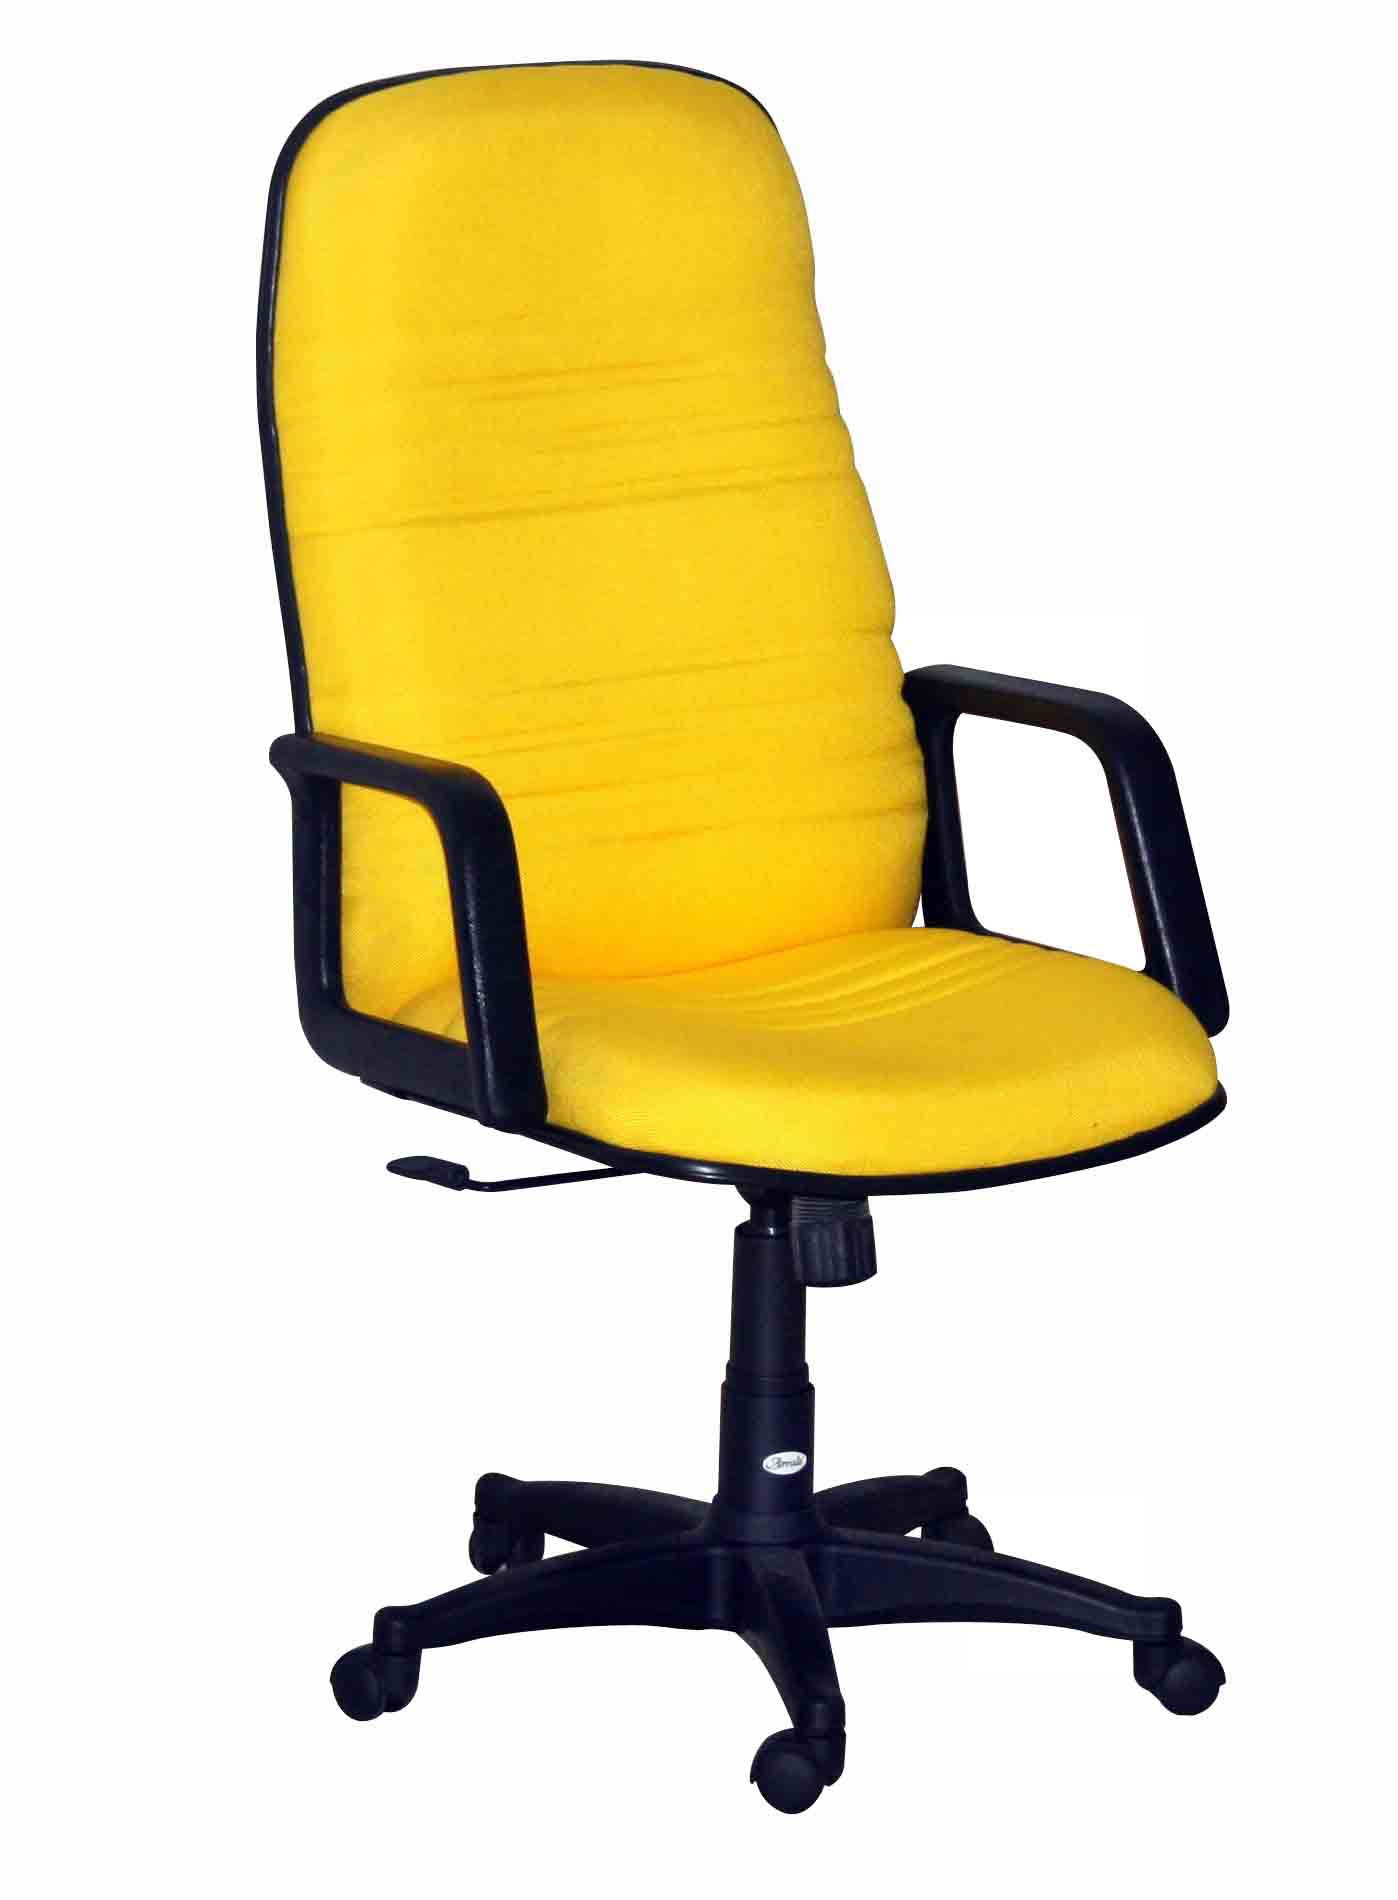 ergonomic chair jakarta antique leather restoration office furniture arkadia